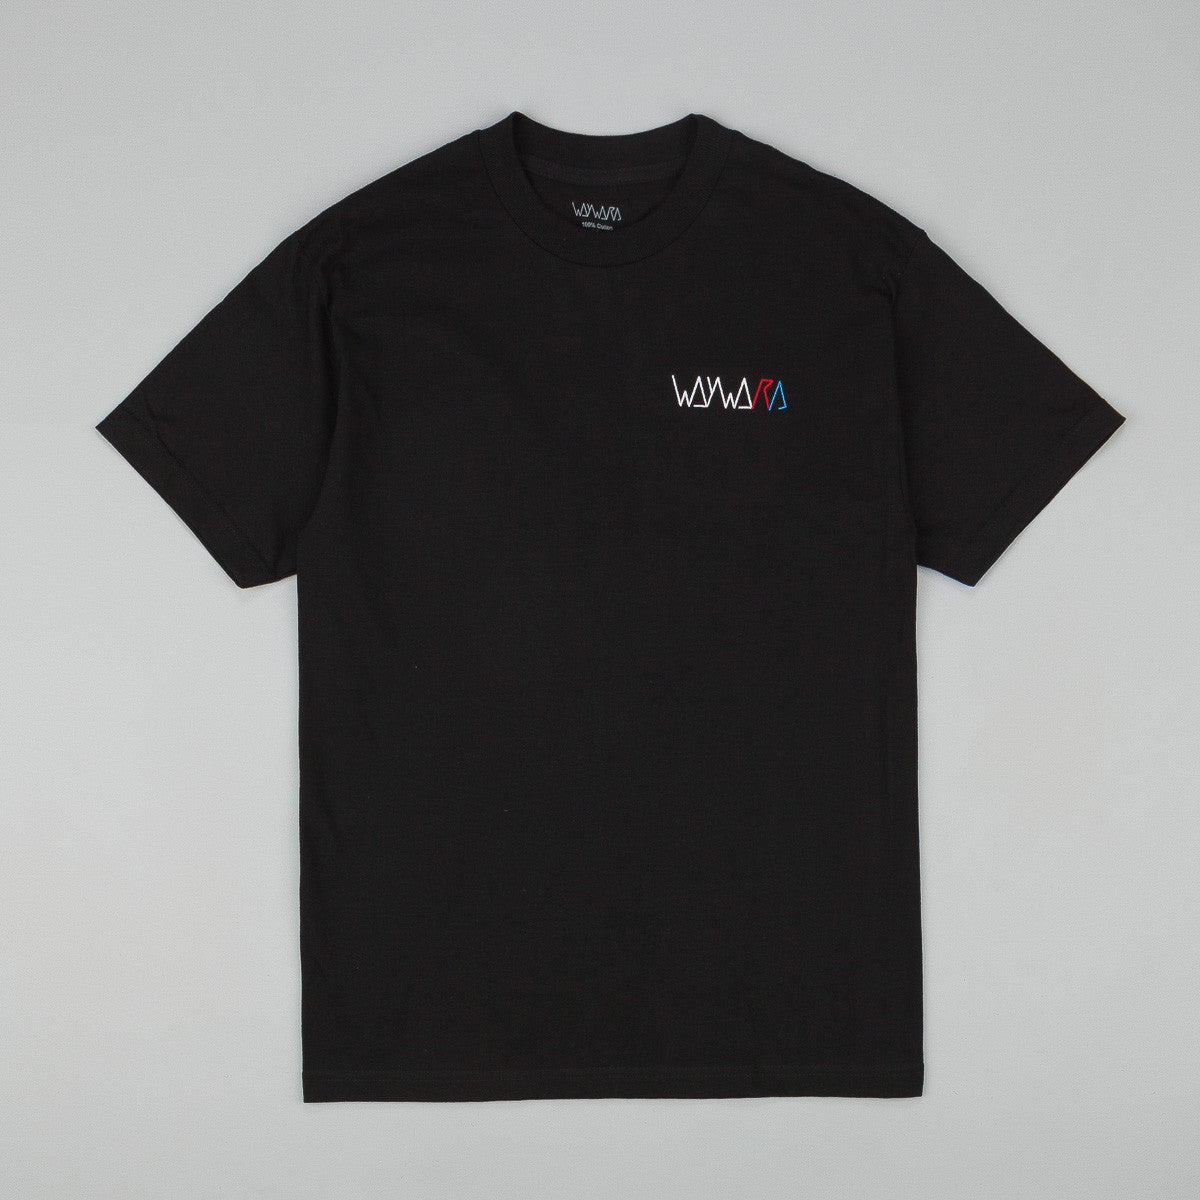 Wayward Strider Logo Embroidered T-Shirt - Black